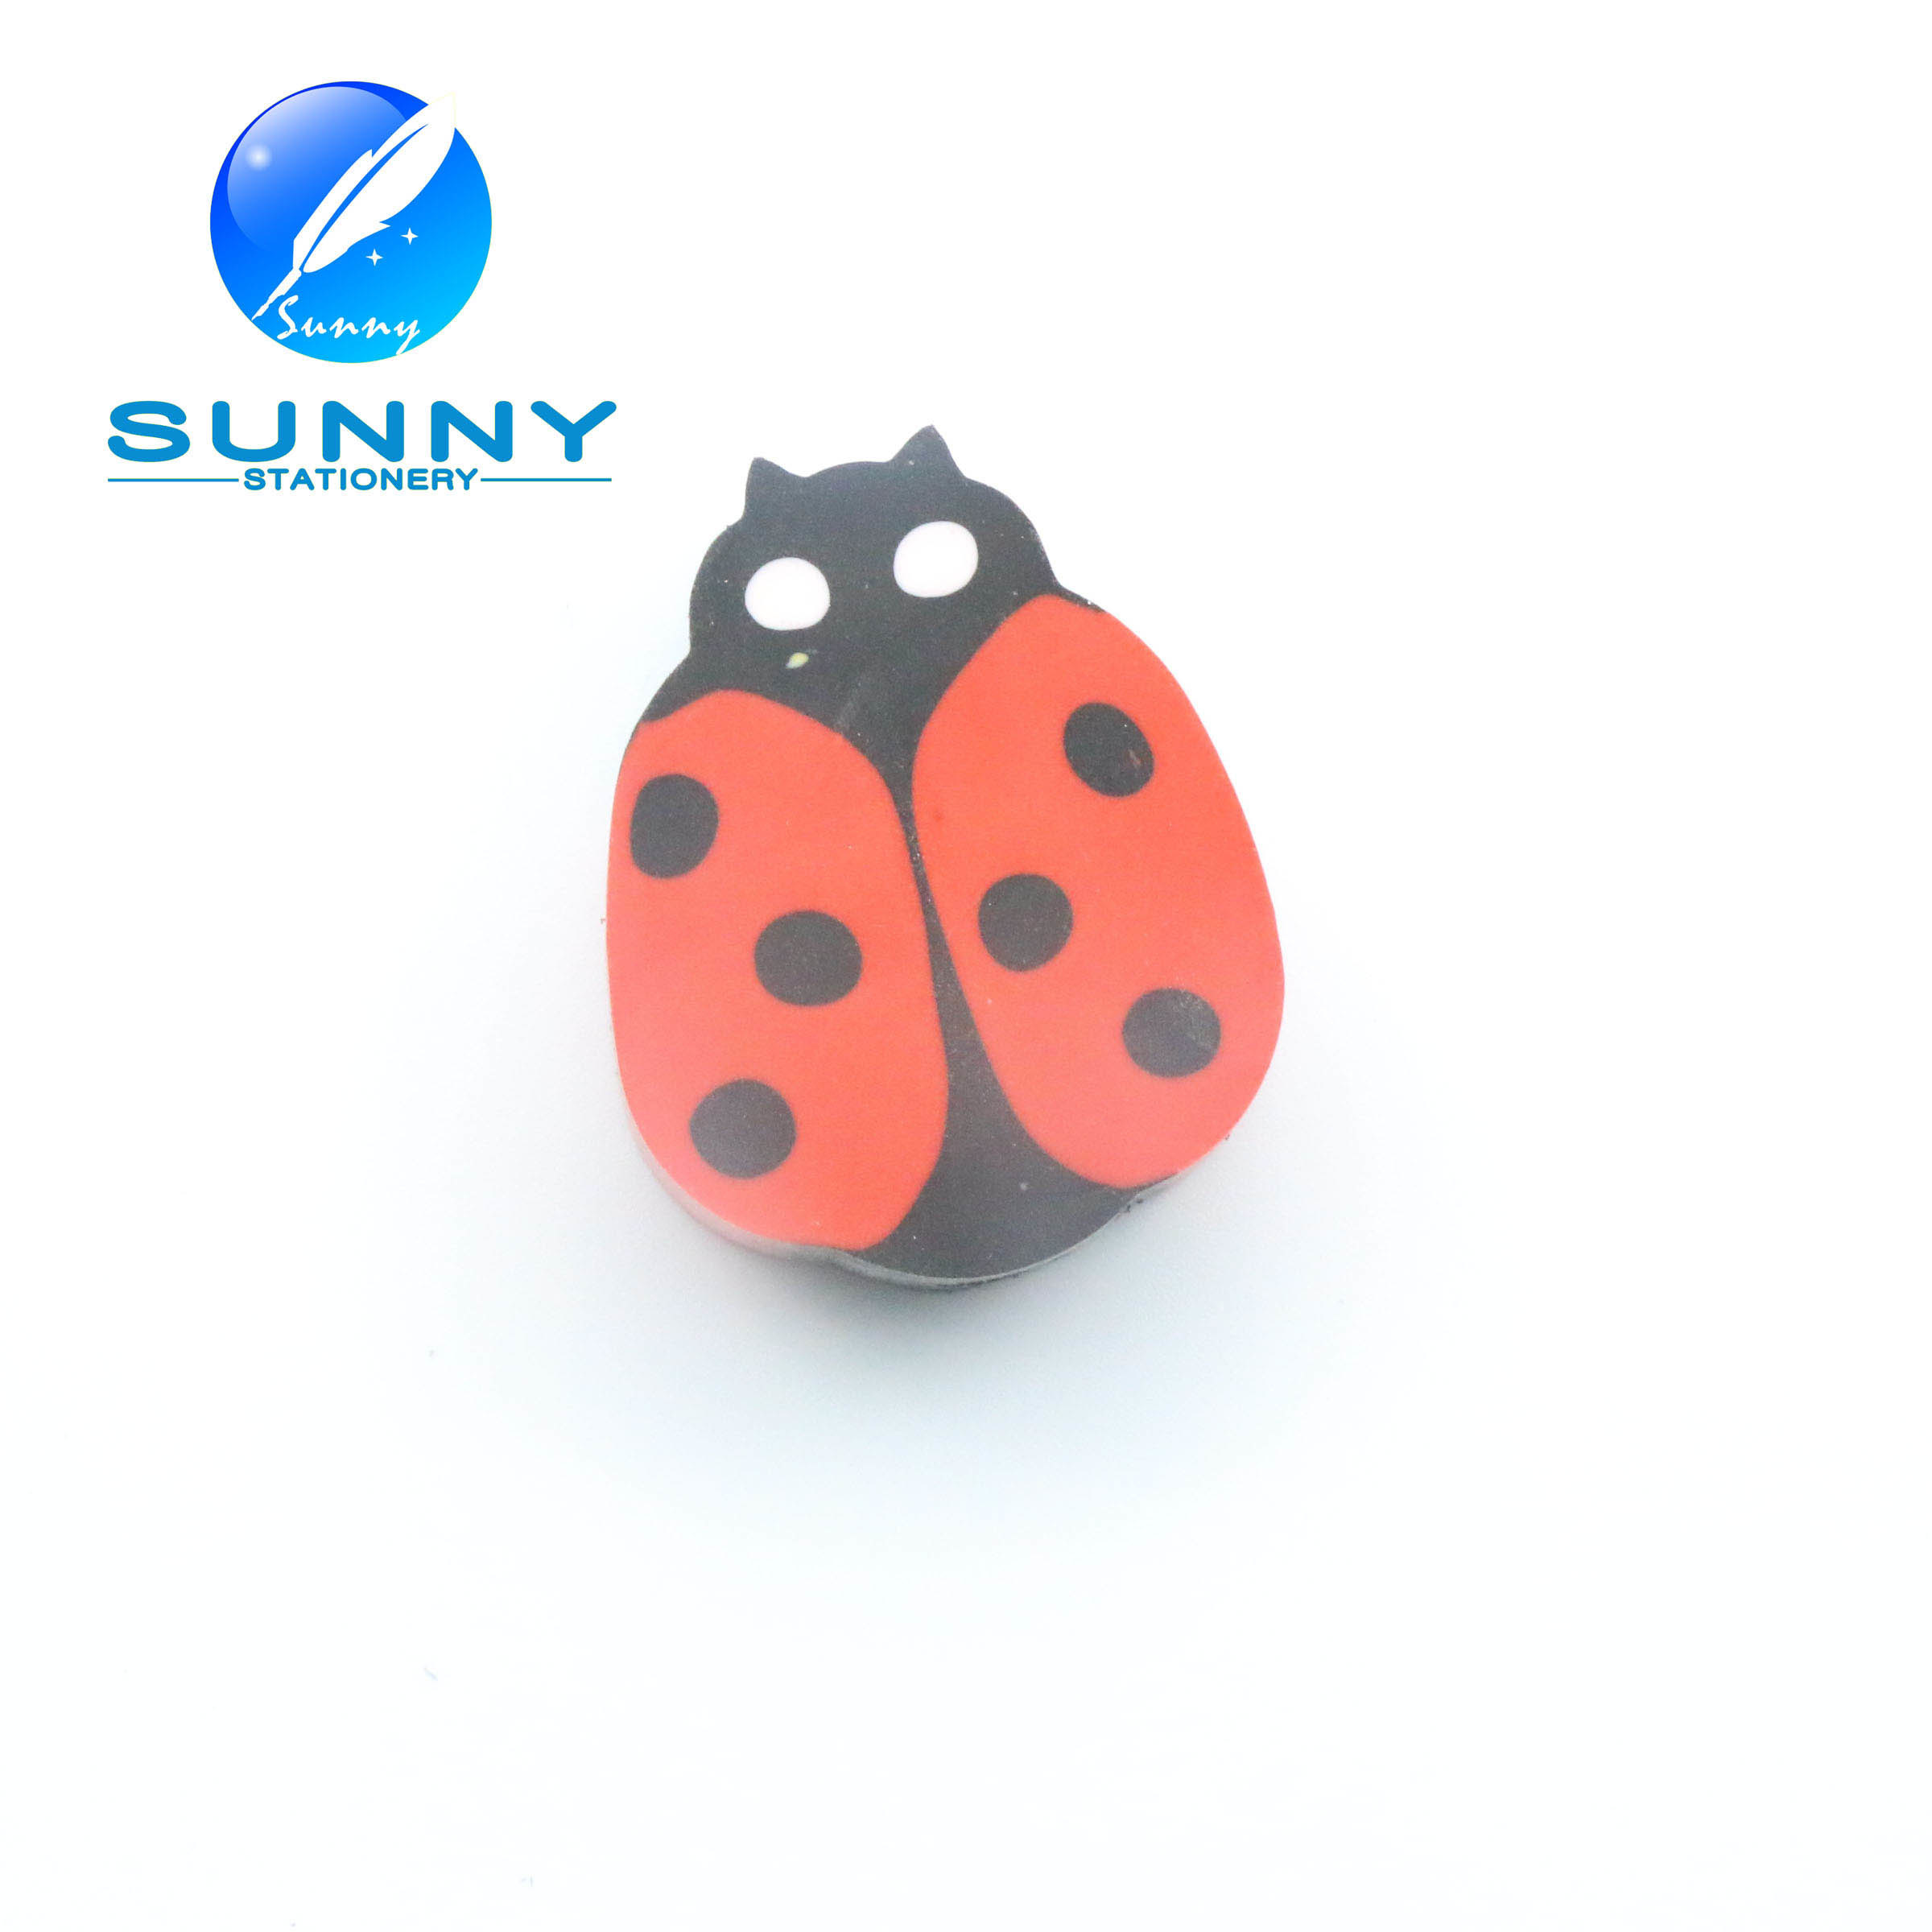 Mini Animal Pencil Eraser, Promption Rubber